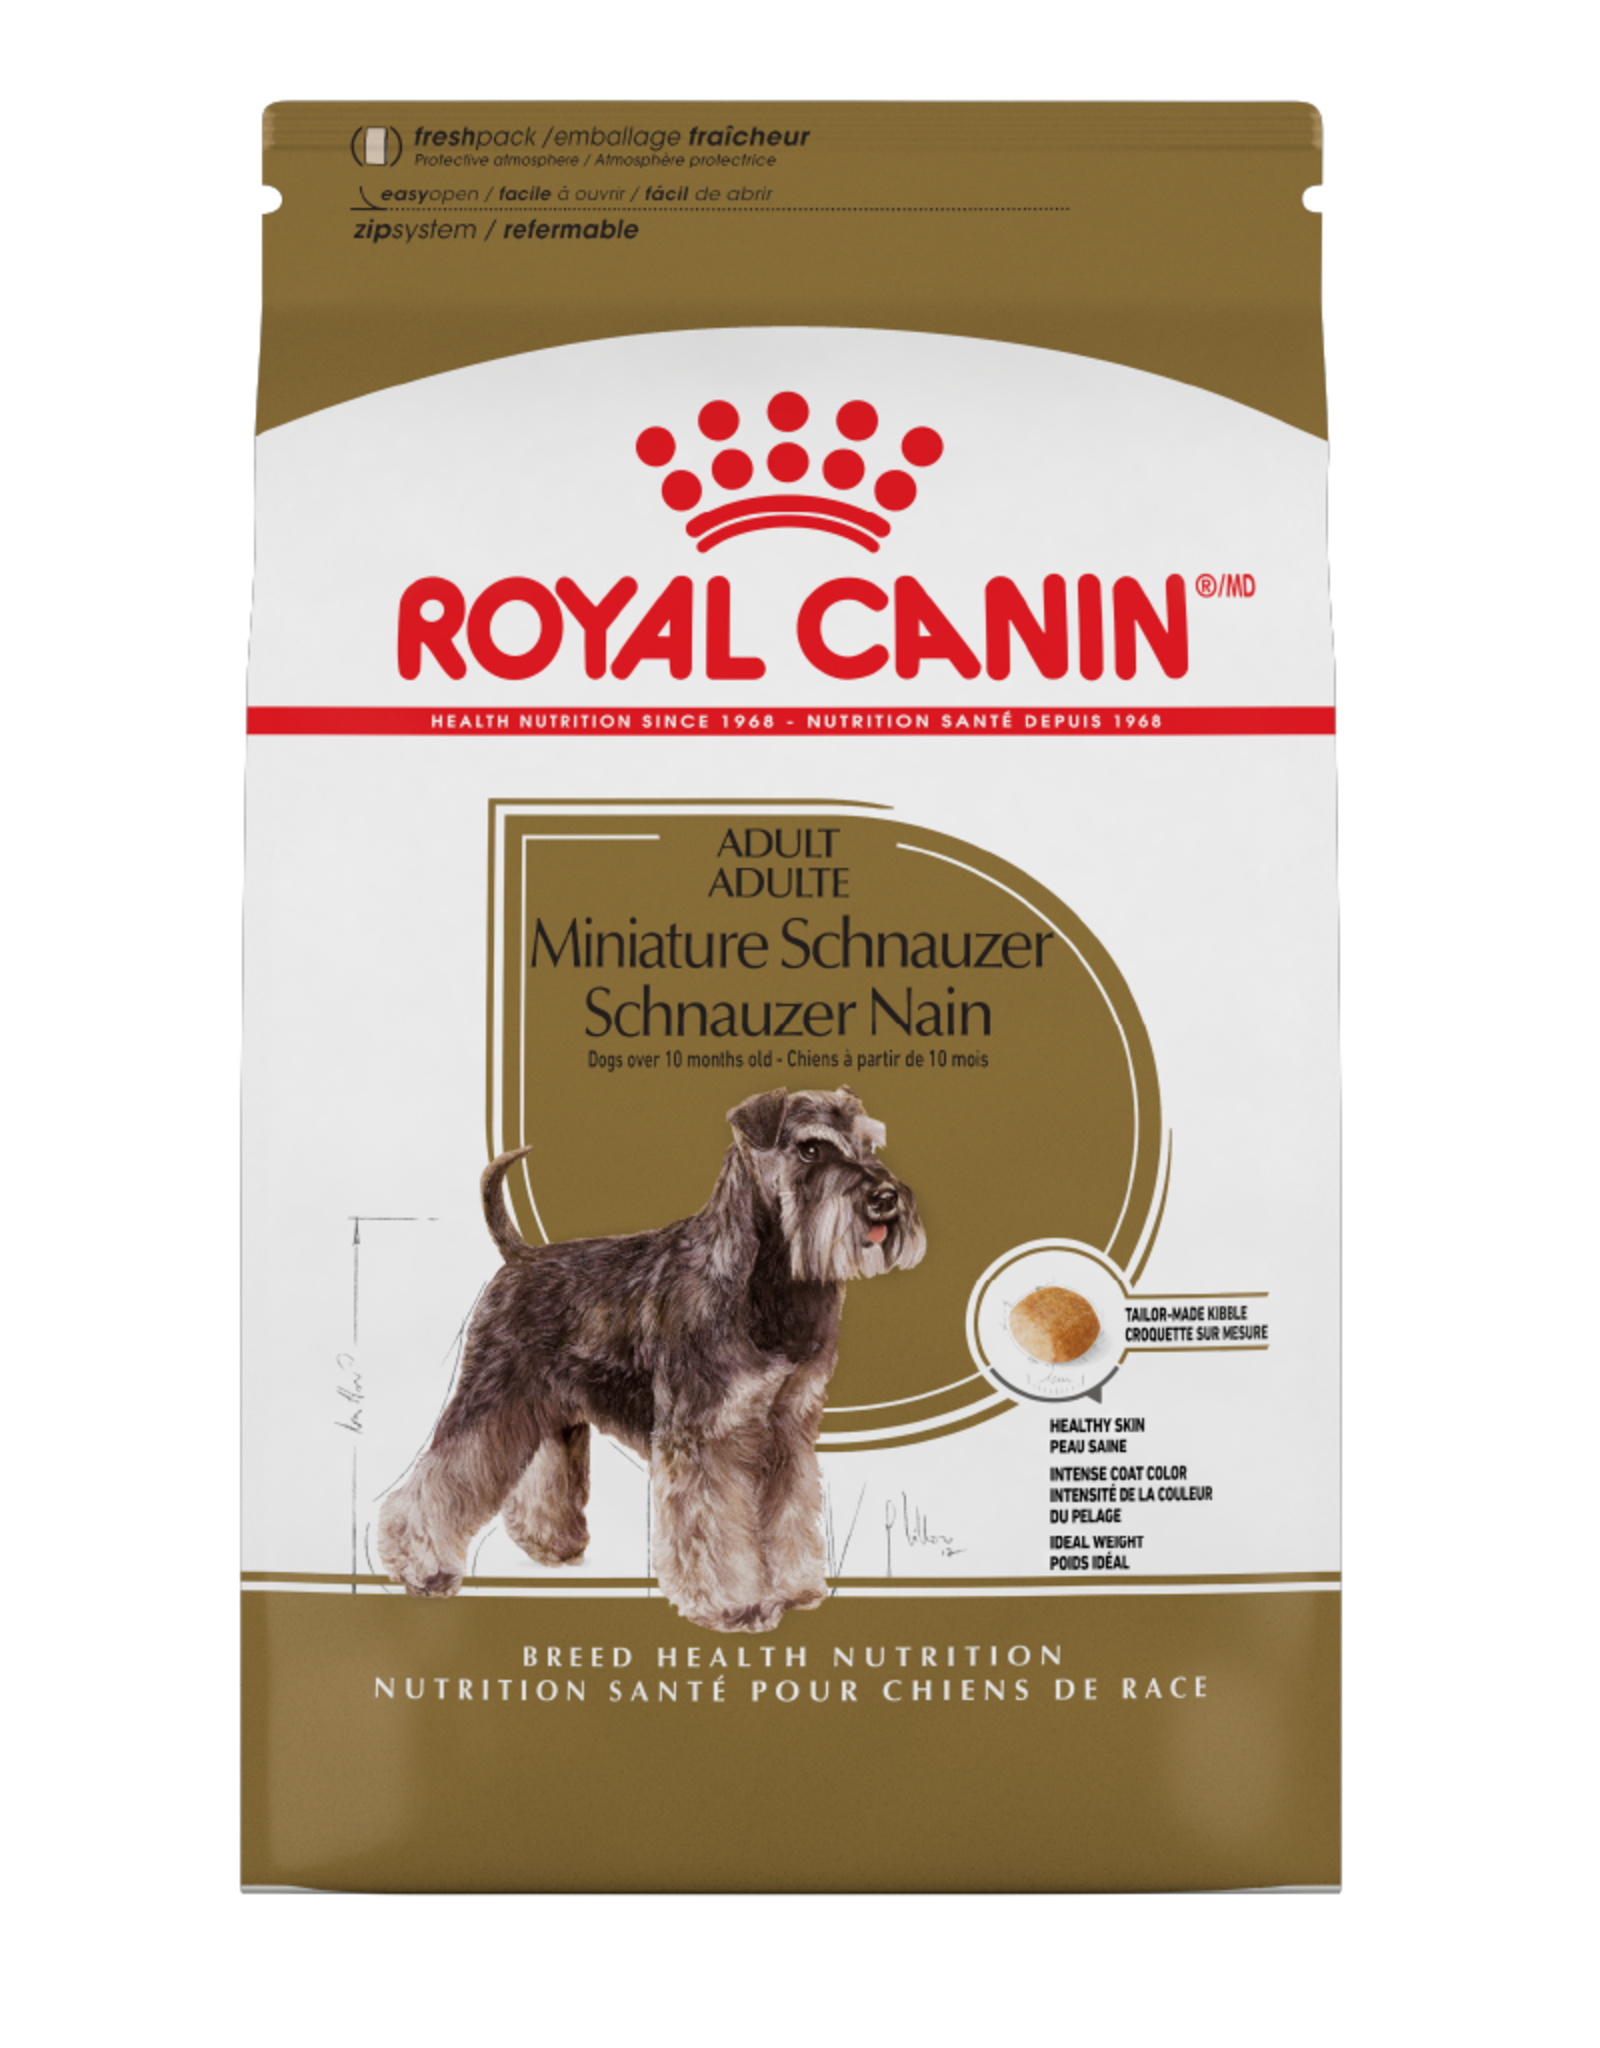 ROYAL CANIN Royal Canin | Miniature Schnauzer Adult